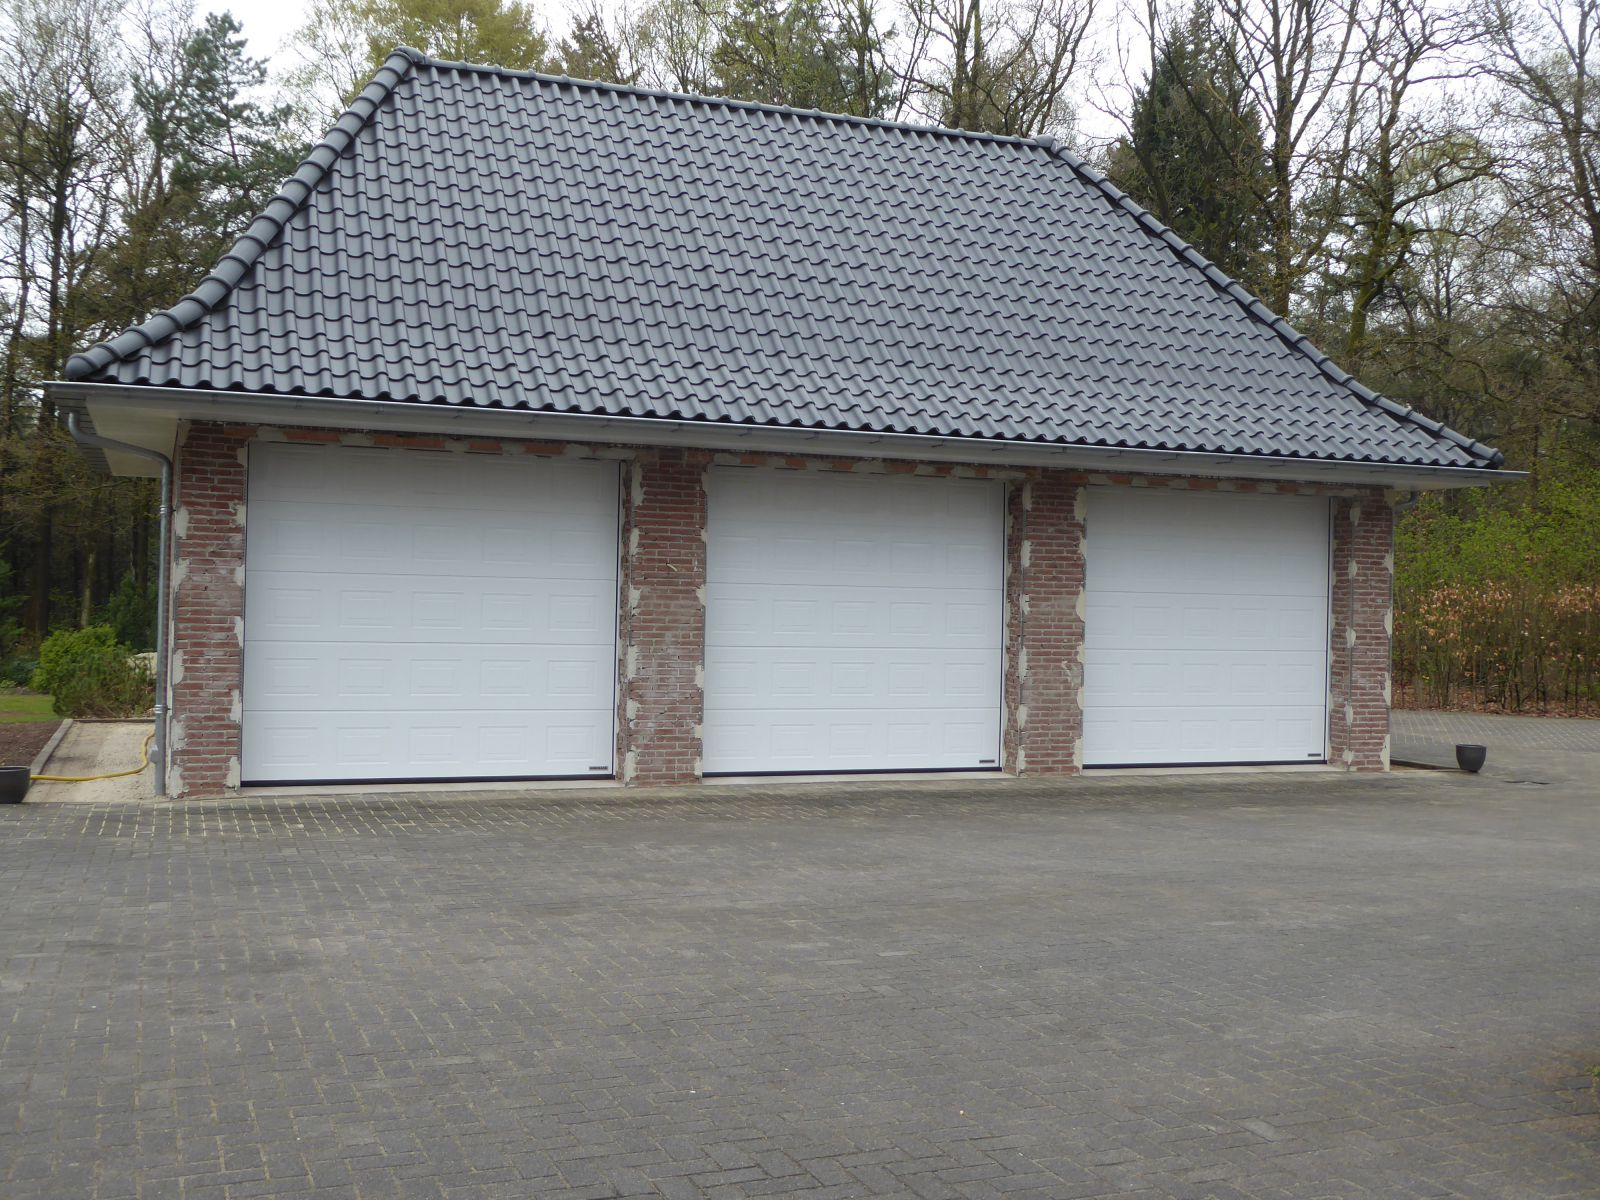 Hormann sectionaal garagedeur Buitink Deventer  in Holten 2018